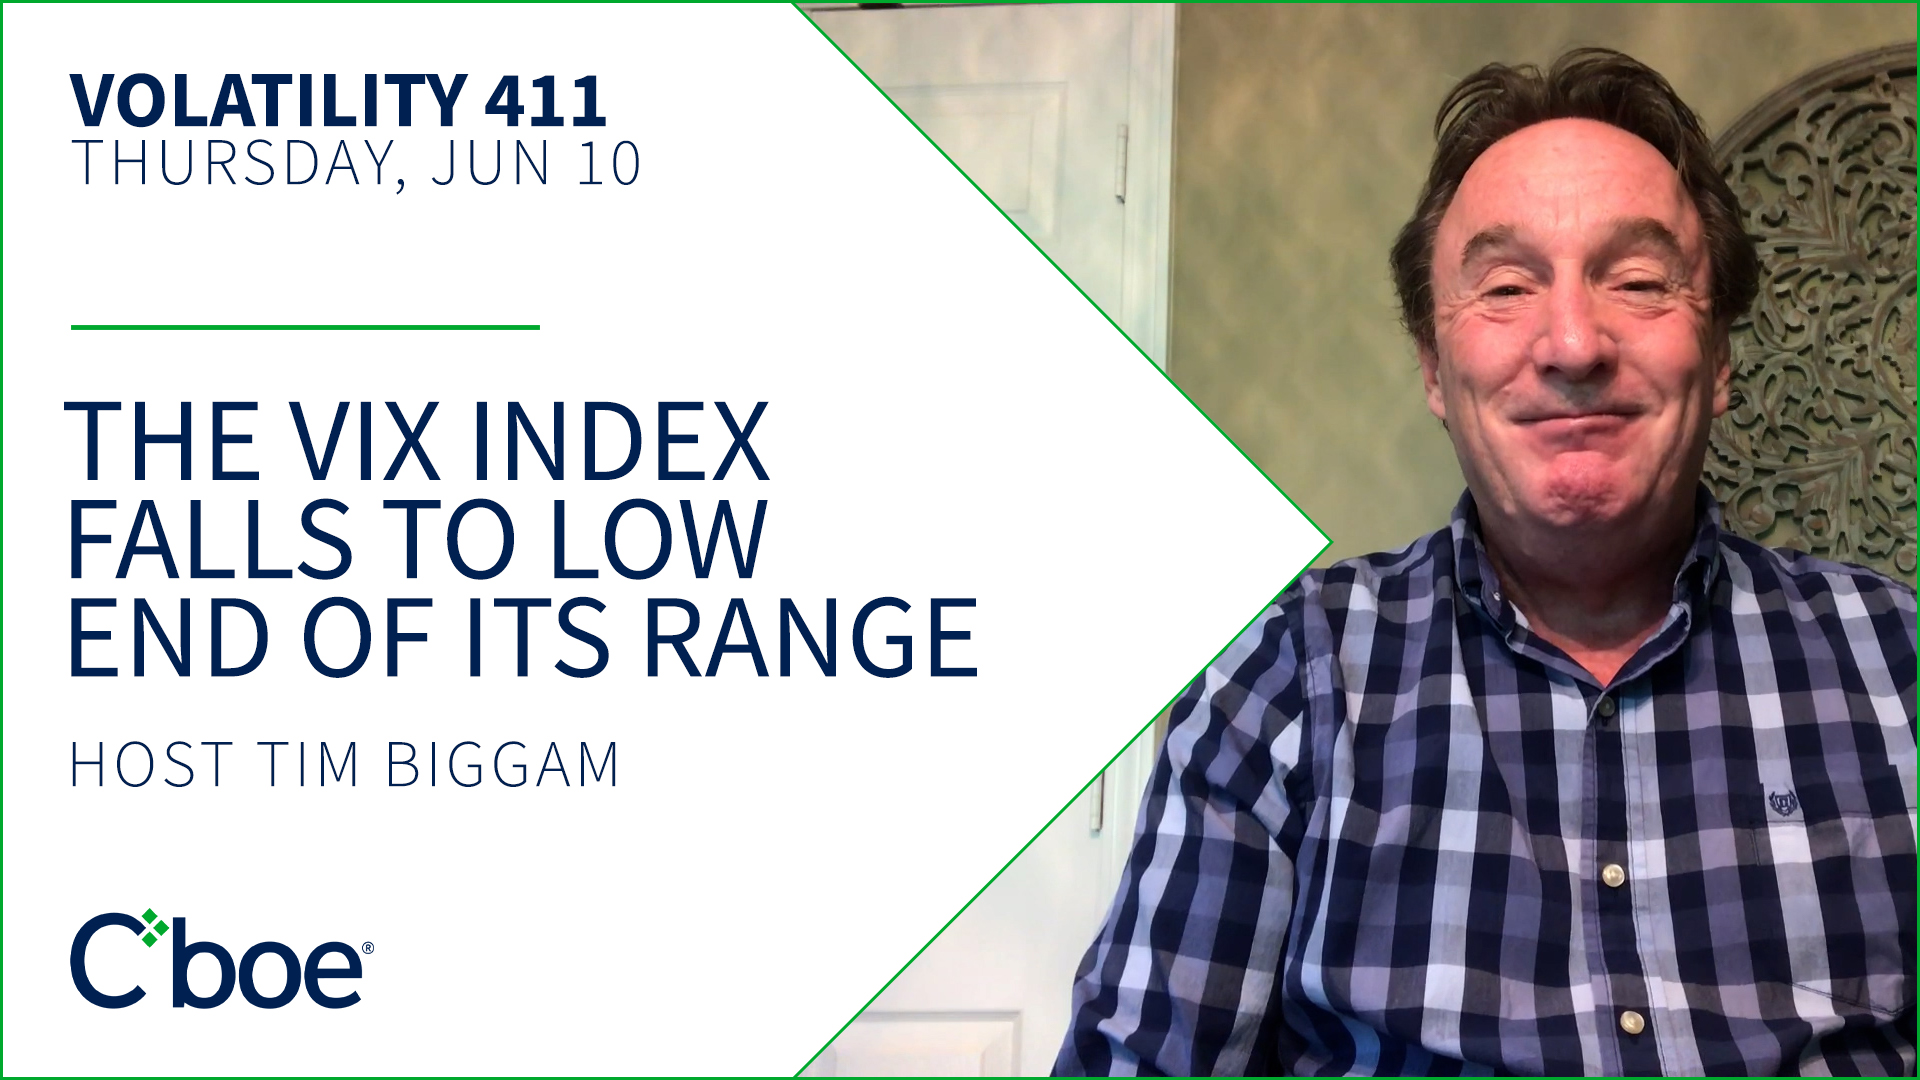 The VIX Index Falls to Low End of Its Range Thumbnail